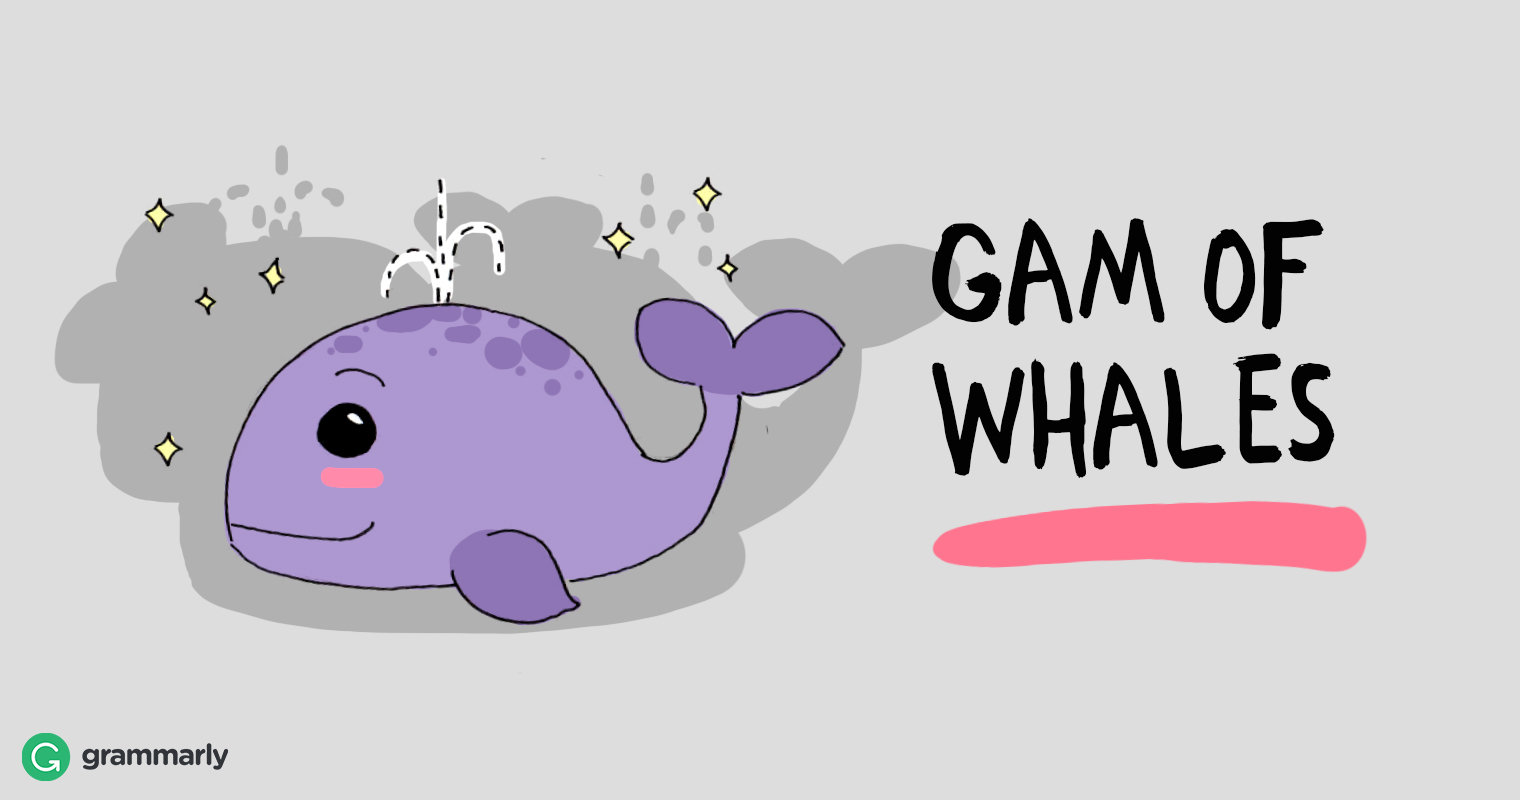 Collective of whales is a gam.